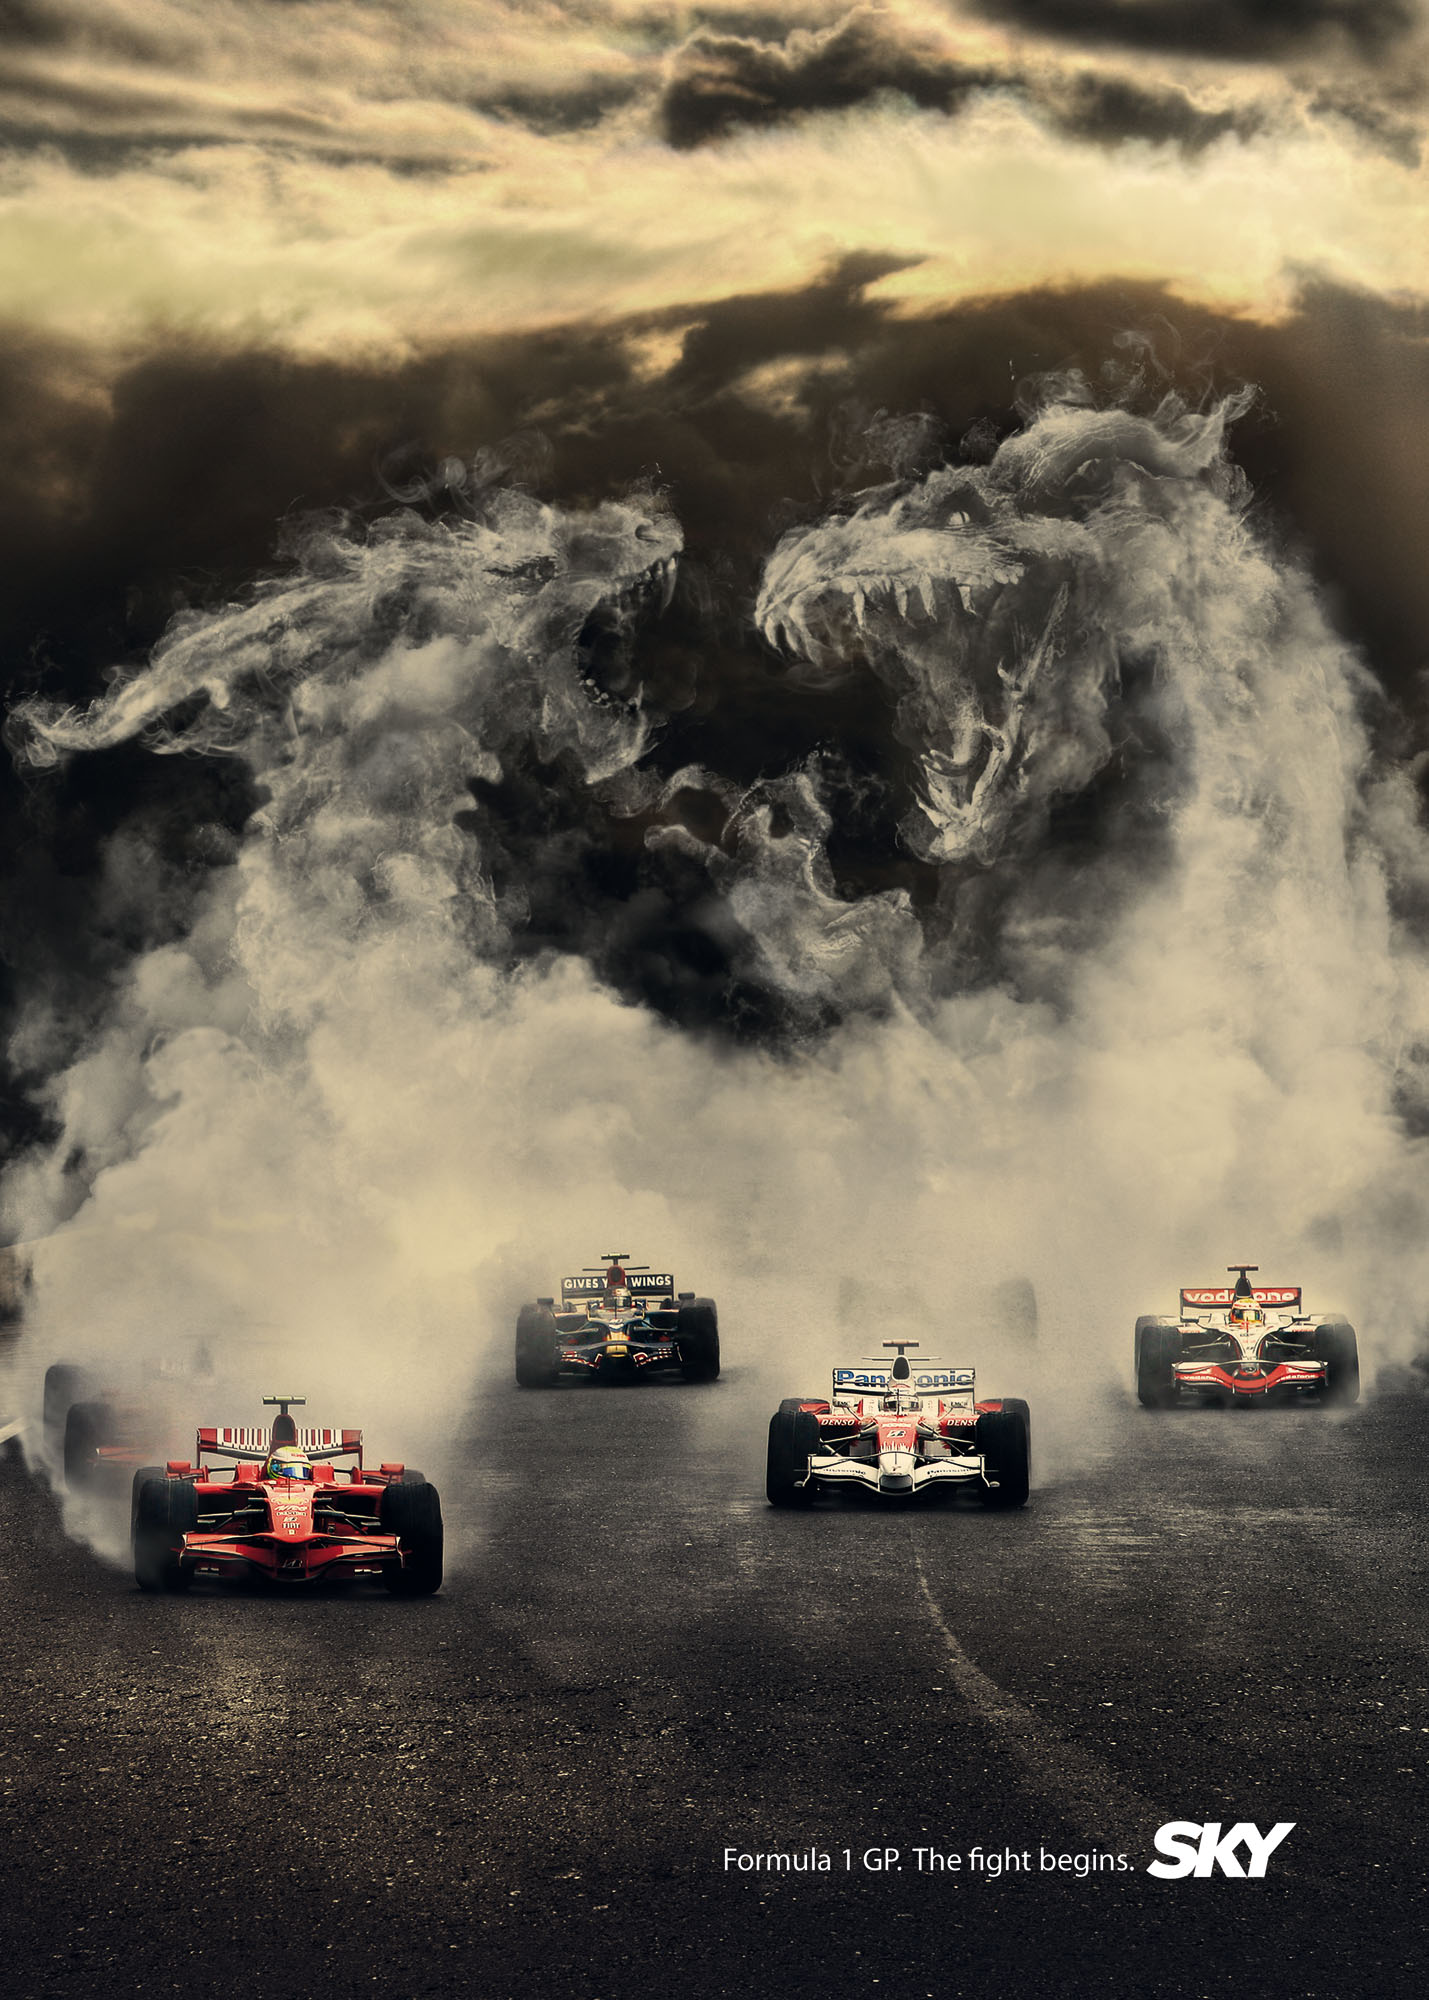 ... ADVERTISING | Advertising Blog & Community » SKY: F1 Monsters